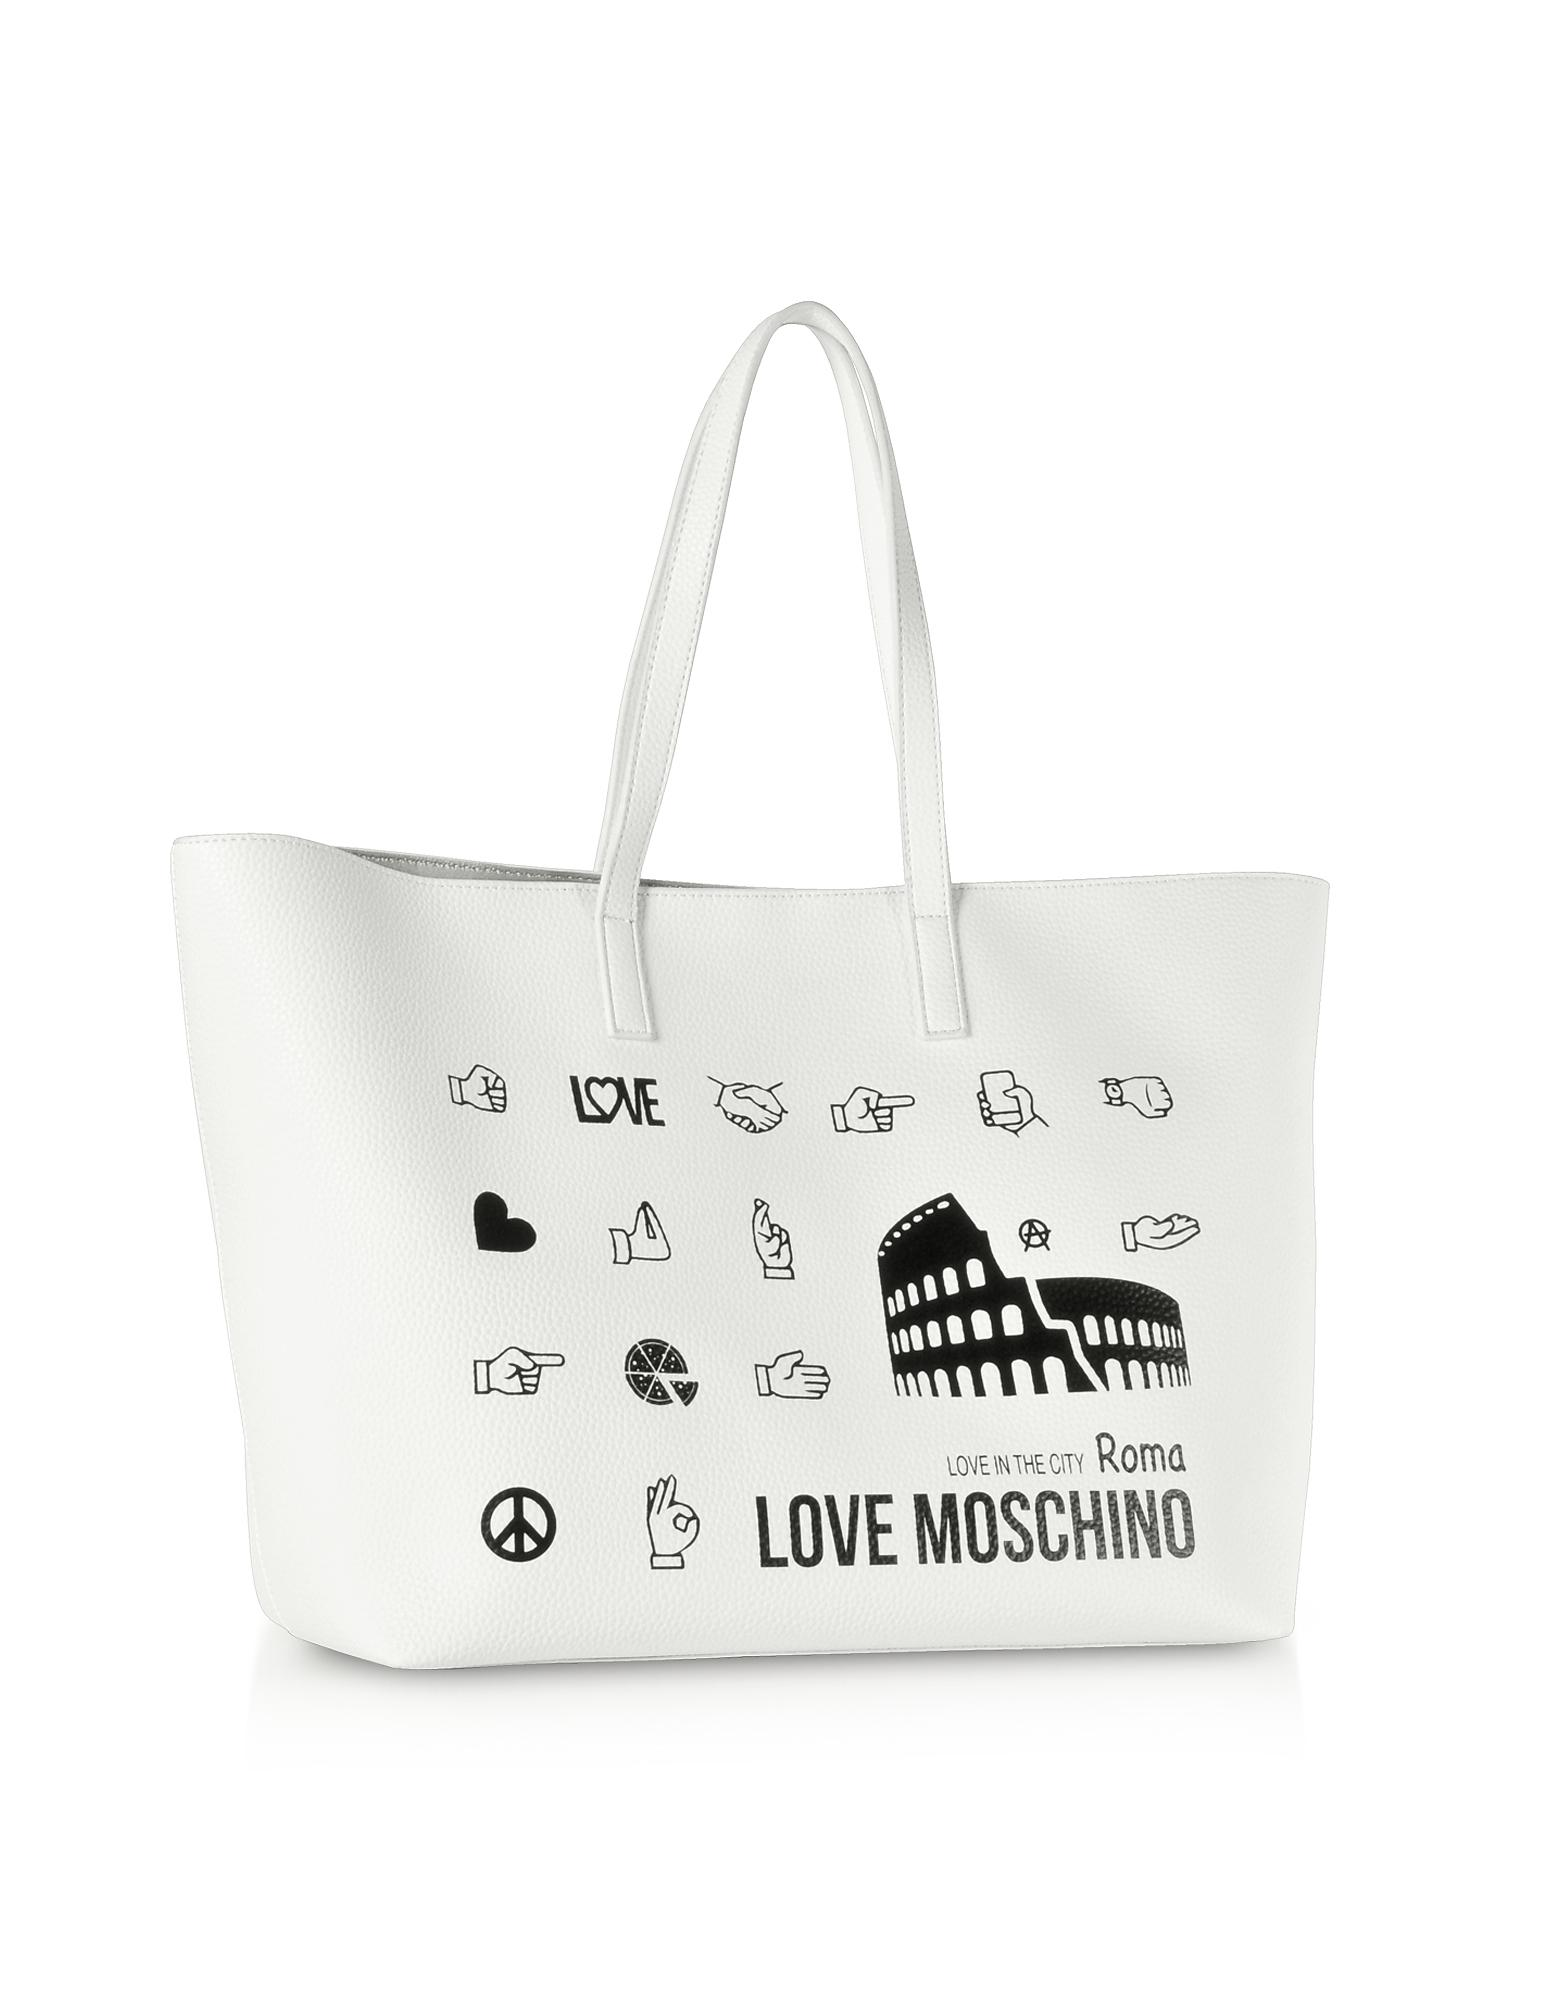 Love Moschino Printed City Lovers Tote Bag in White - Lyst 175699d0fe2e8